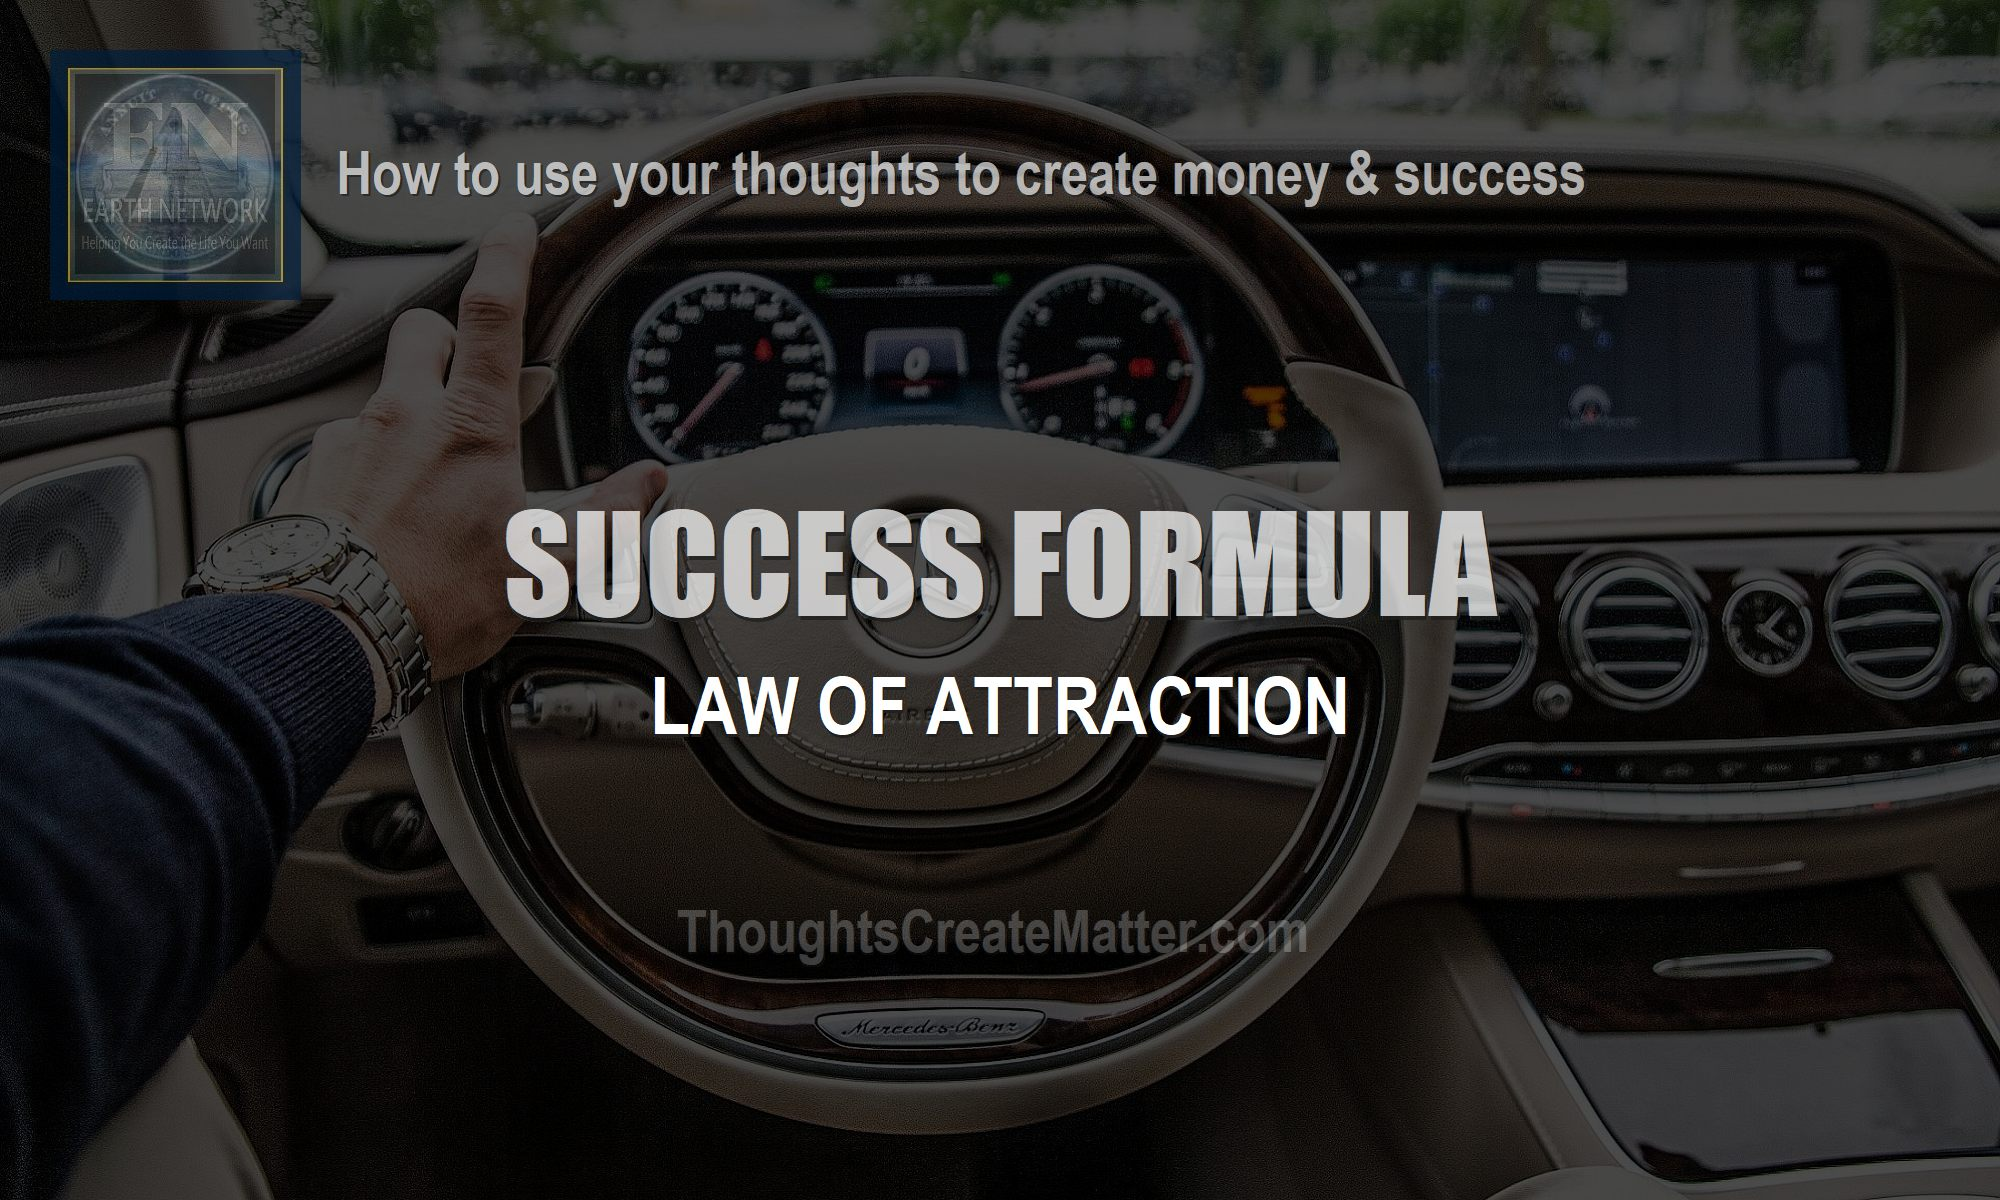 Rich-person-depicts-thoughts-create-money-success-formula-law-of-attraction-money